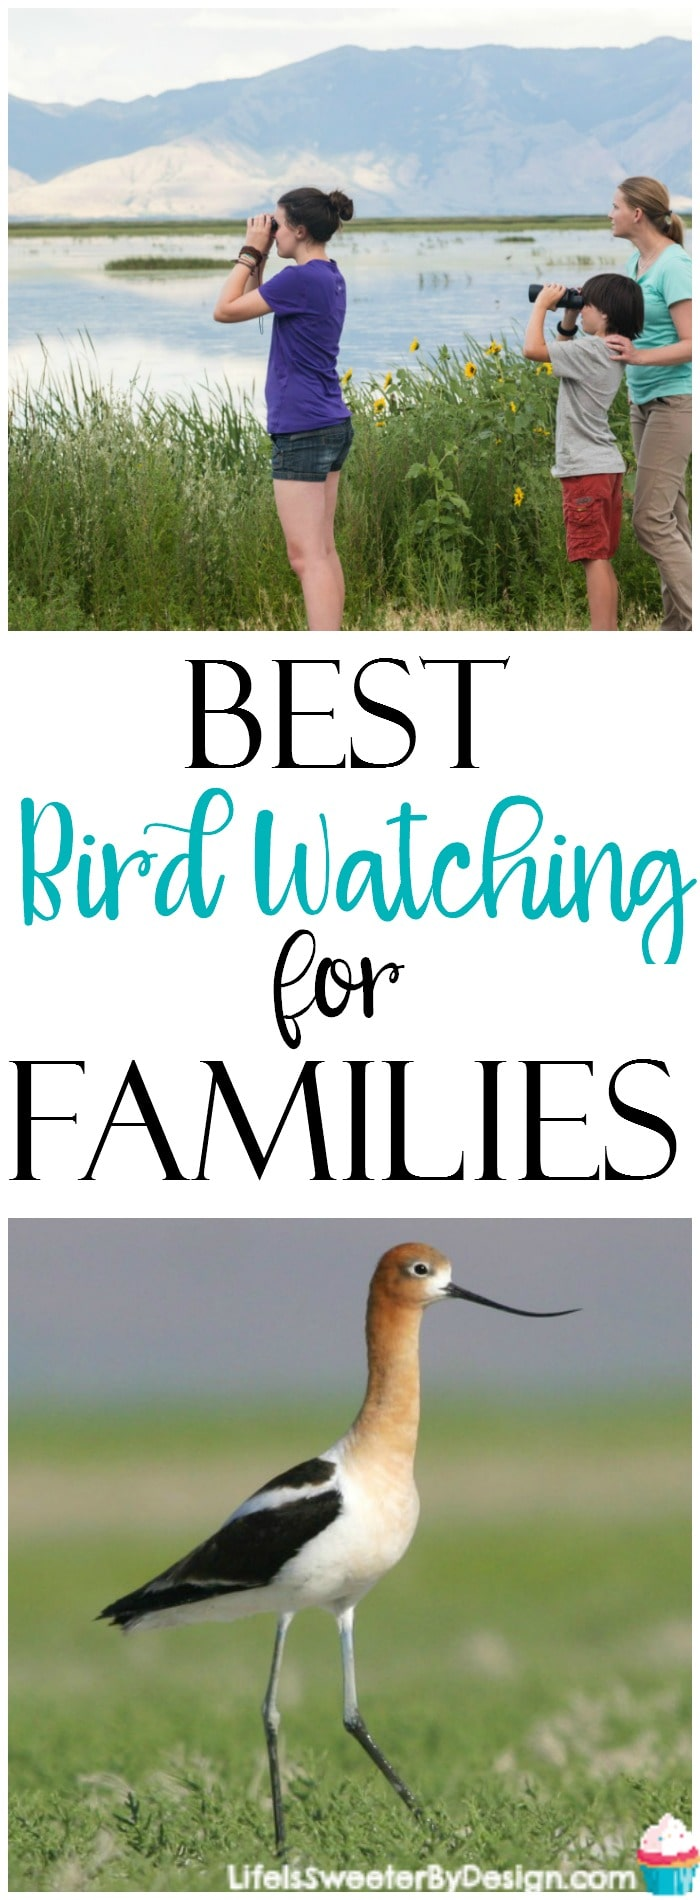 Bird watching is a great family activity.  There is a great place for families to go bird watching in Box Elder County Utah.  There are over 250 species of birds in this area! Such a great place for an outdoor family vacation.